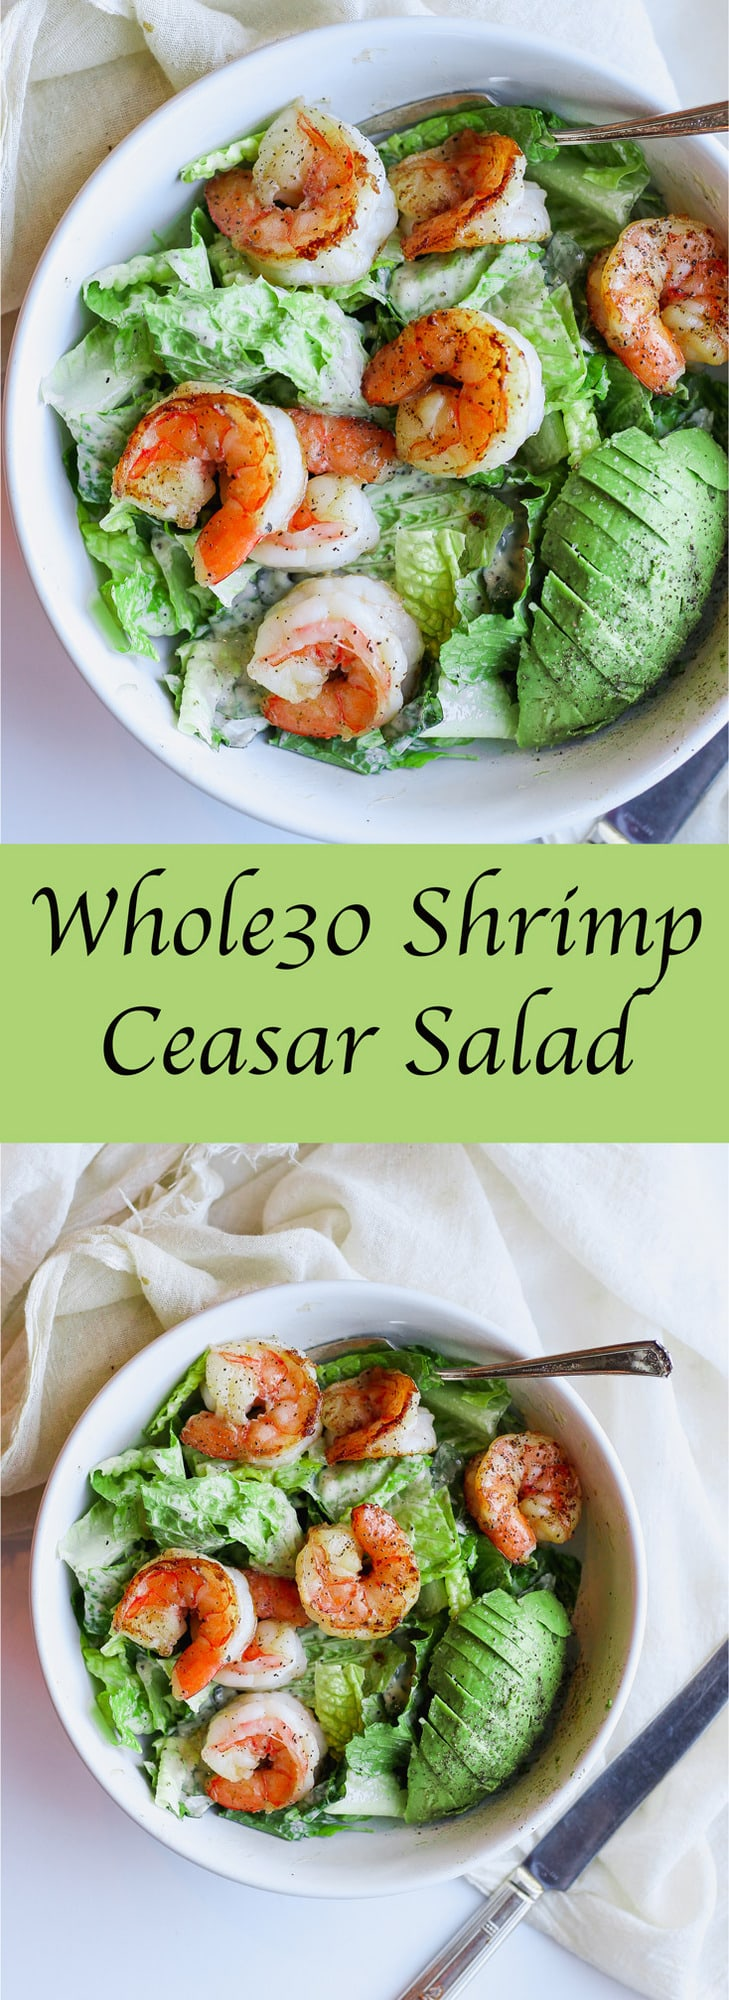 Whole30 Shrimp Cesar Salad - a quick and easy Whole30 dinner!